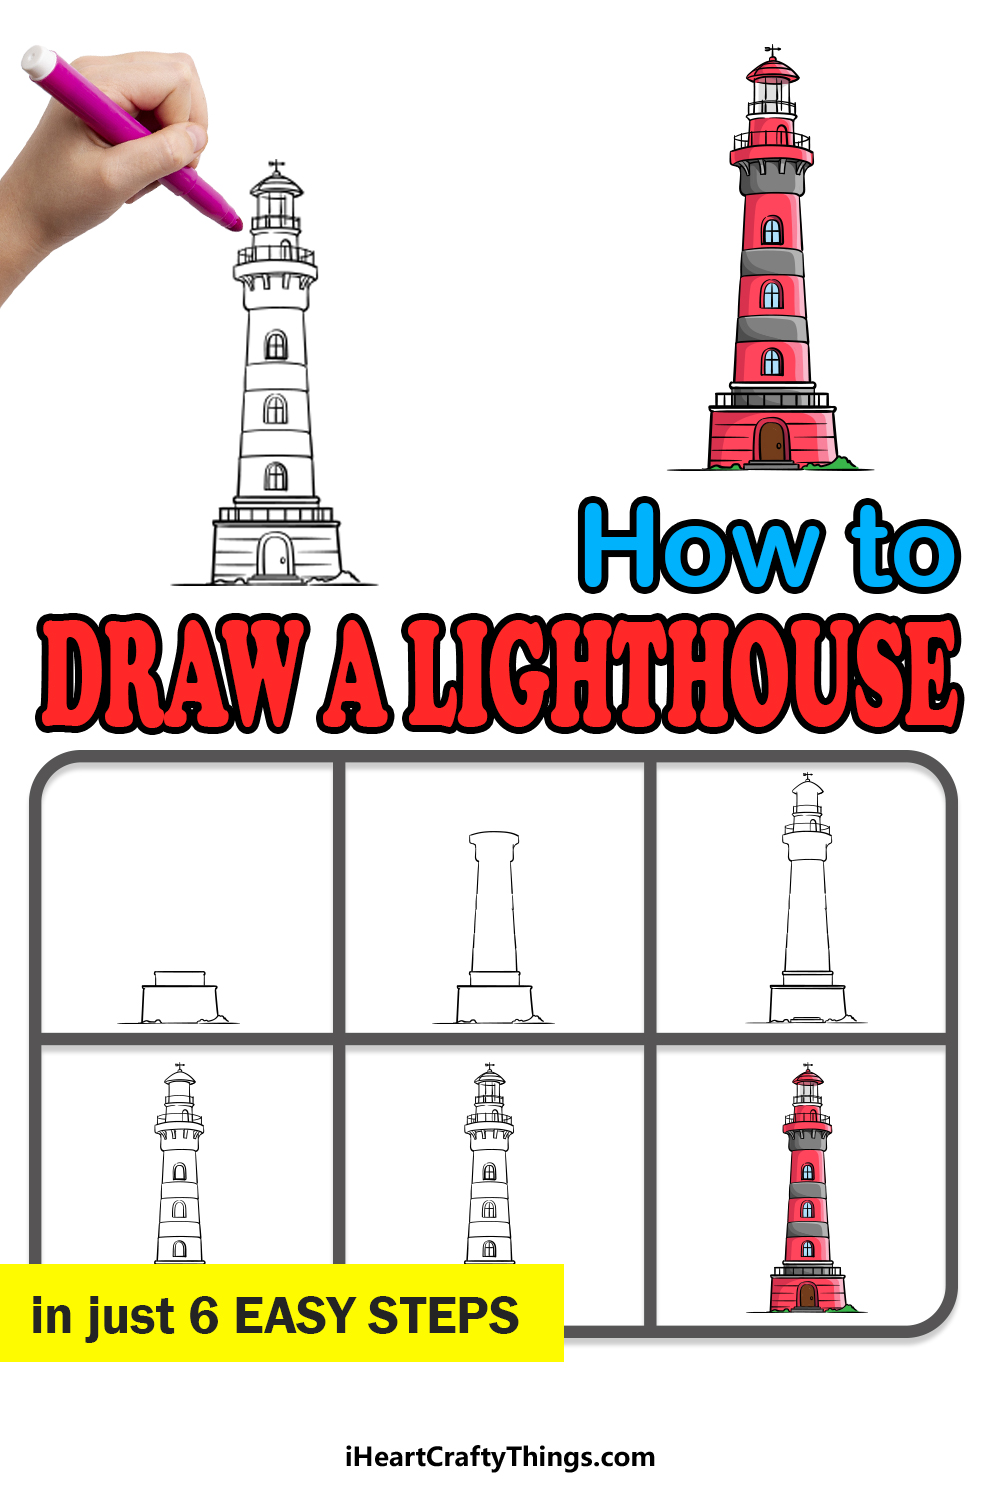 how to draw a lighthouse in 6 easy steps